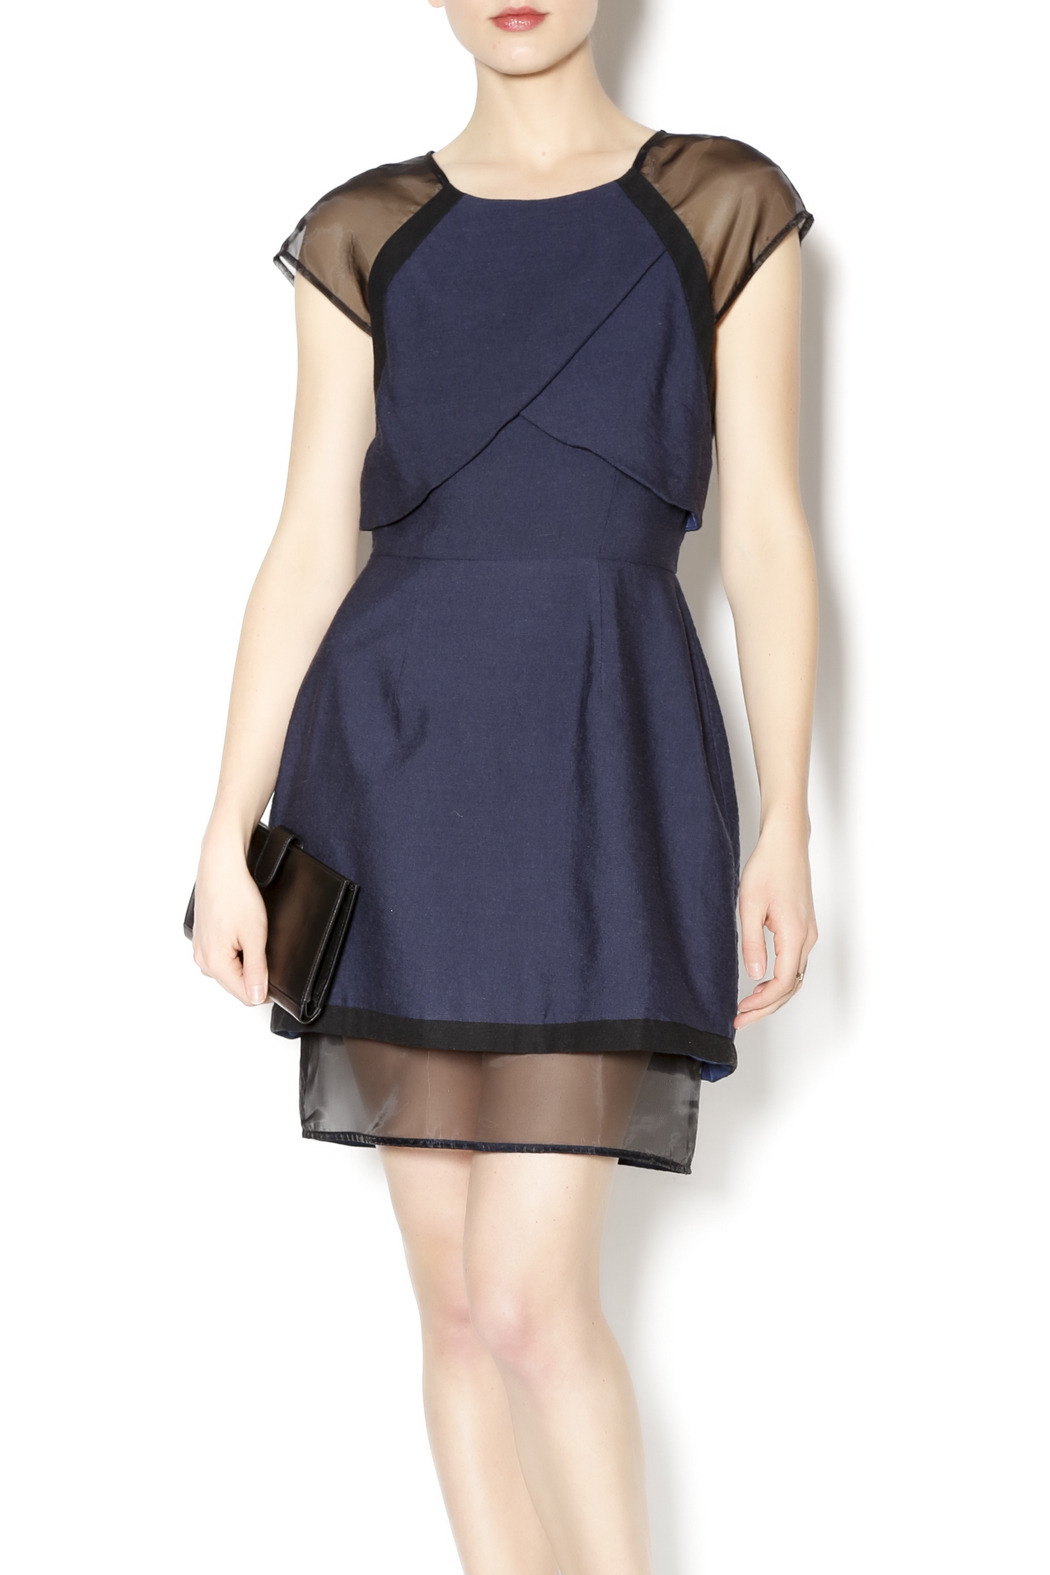 C/MEO COLLECTIVE Navy and Sheer Dress - Main Image